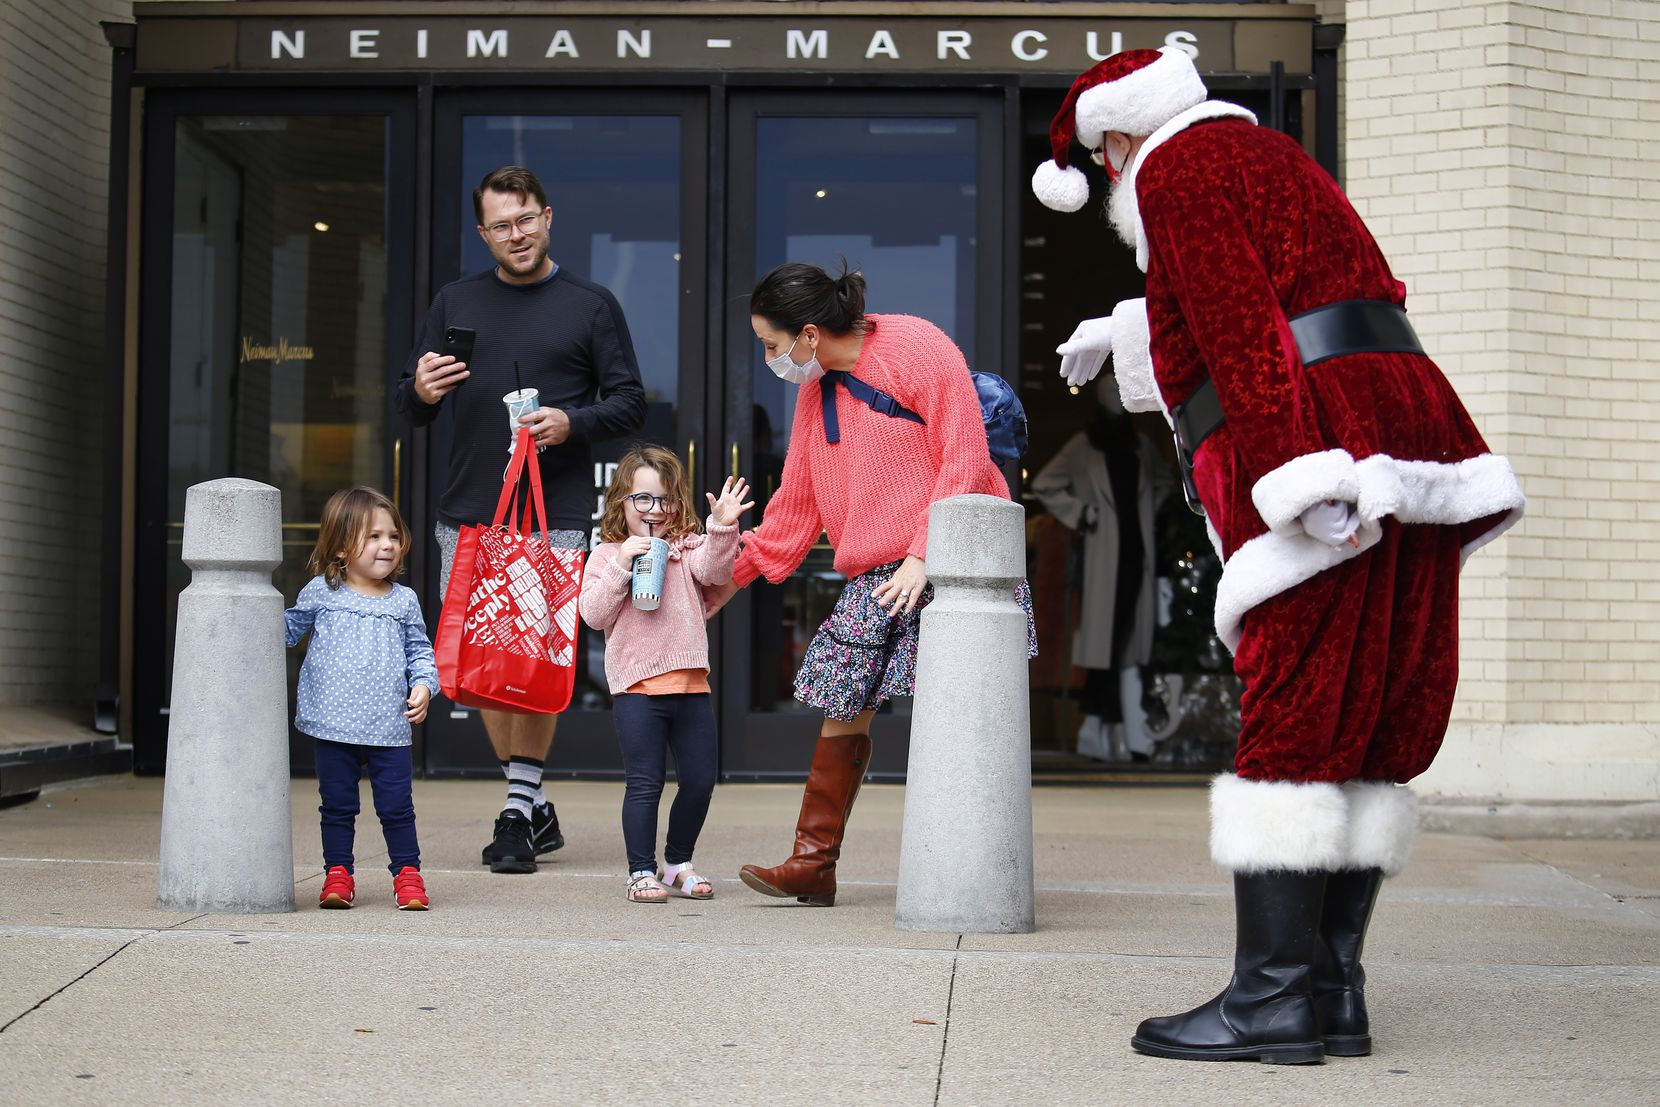 Stella Helt, 4, waves to Santa Claus, aka Mike Davis, as she and her sister, Evie, dad Bob and mom Gayle leave the Neiman Marcus store at NorthPark Center in Dallas. Santa was helping with curbside pickup at the store.